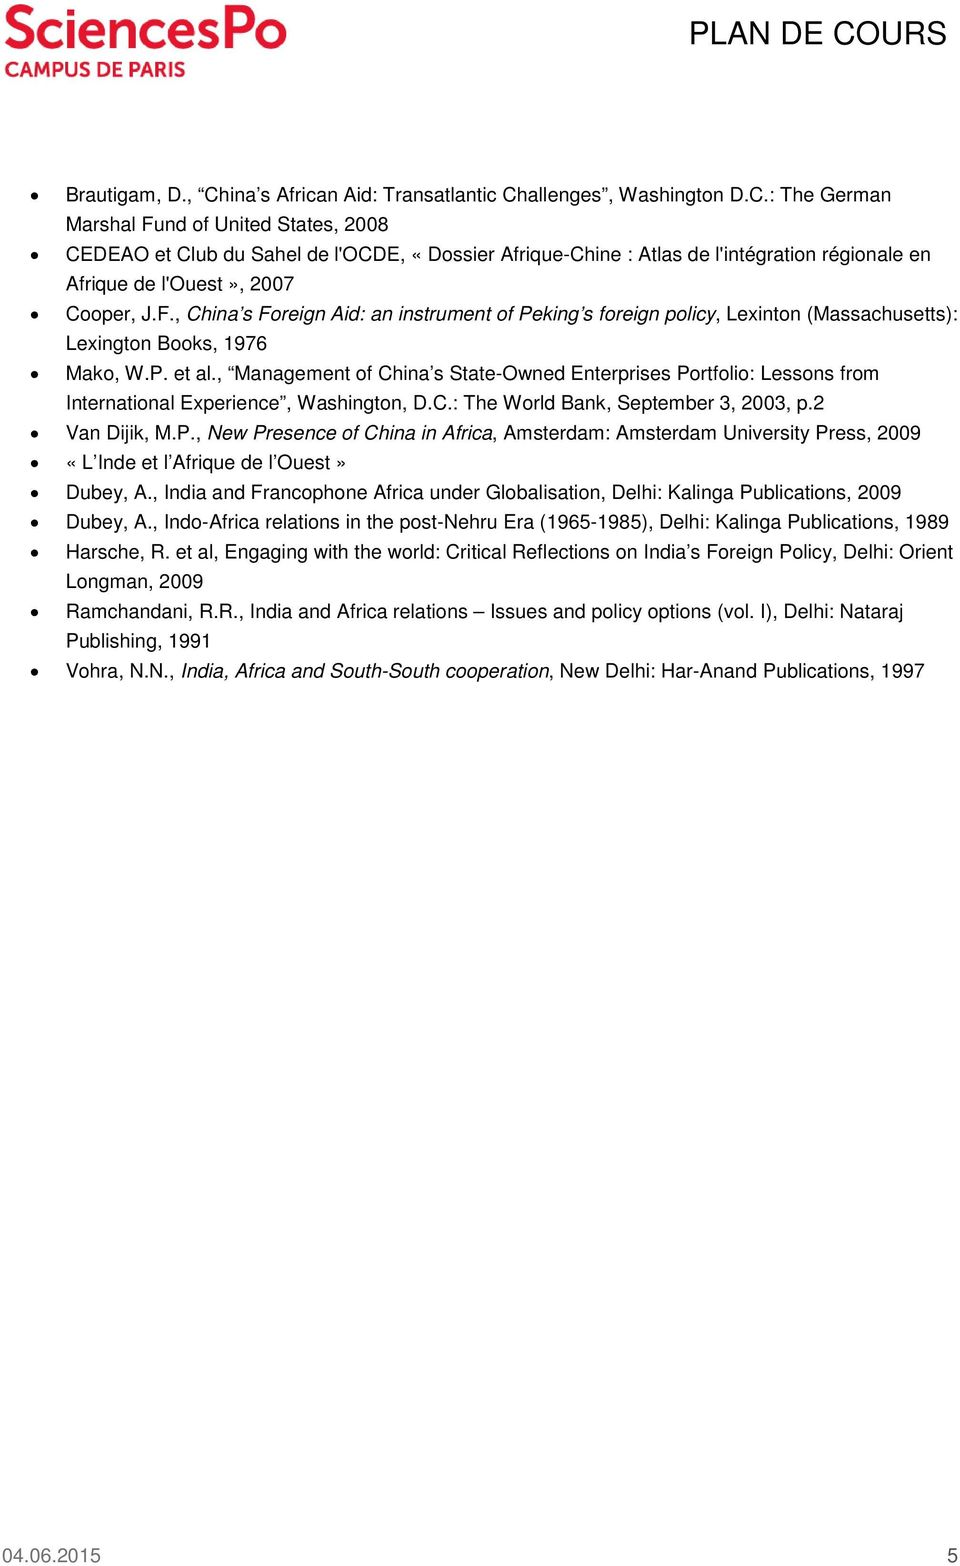 , Management of China s State-Owned Enterprises Portfolio: Lessons from International Experience, Washington, D.C.: The World Bank, September 3, 2003, p.2 Van Dijik, M.P., New Presence of China in Africa, Amsterdam: Amsterdam University Press, 2009 «L Inde et l Afrique de l Ouest» Dubey, A.